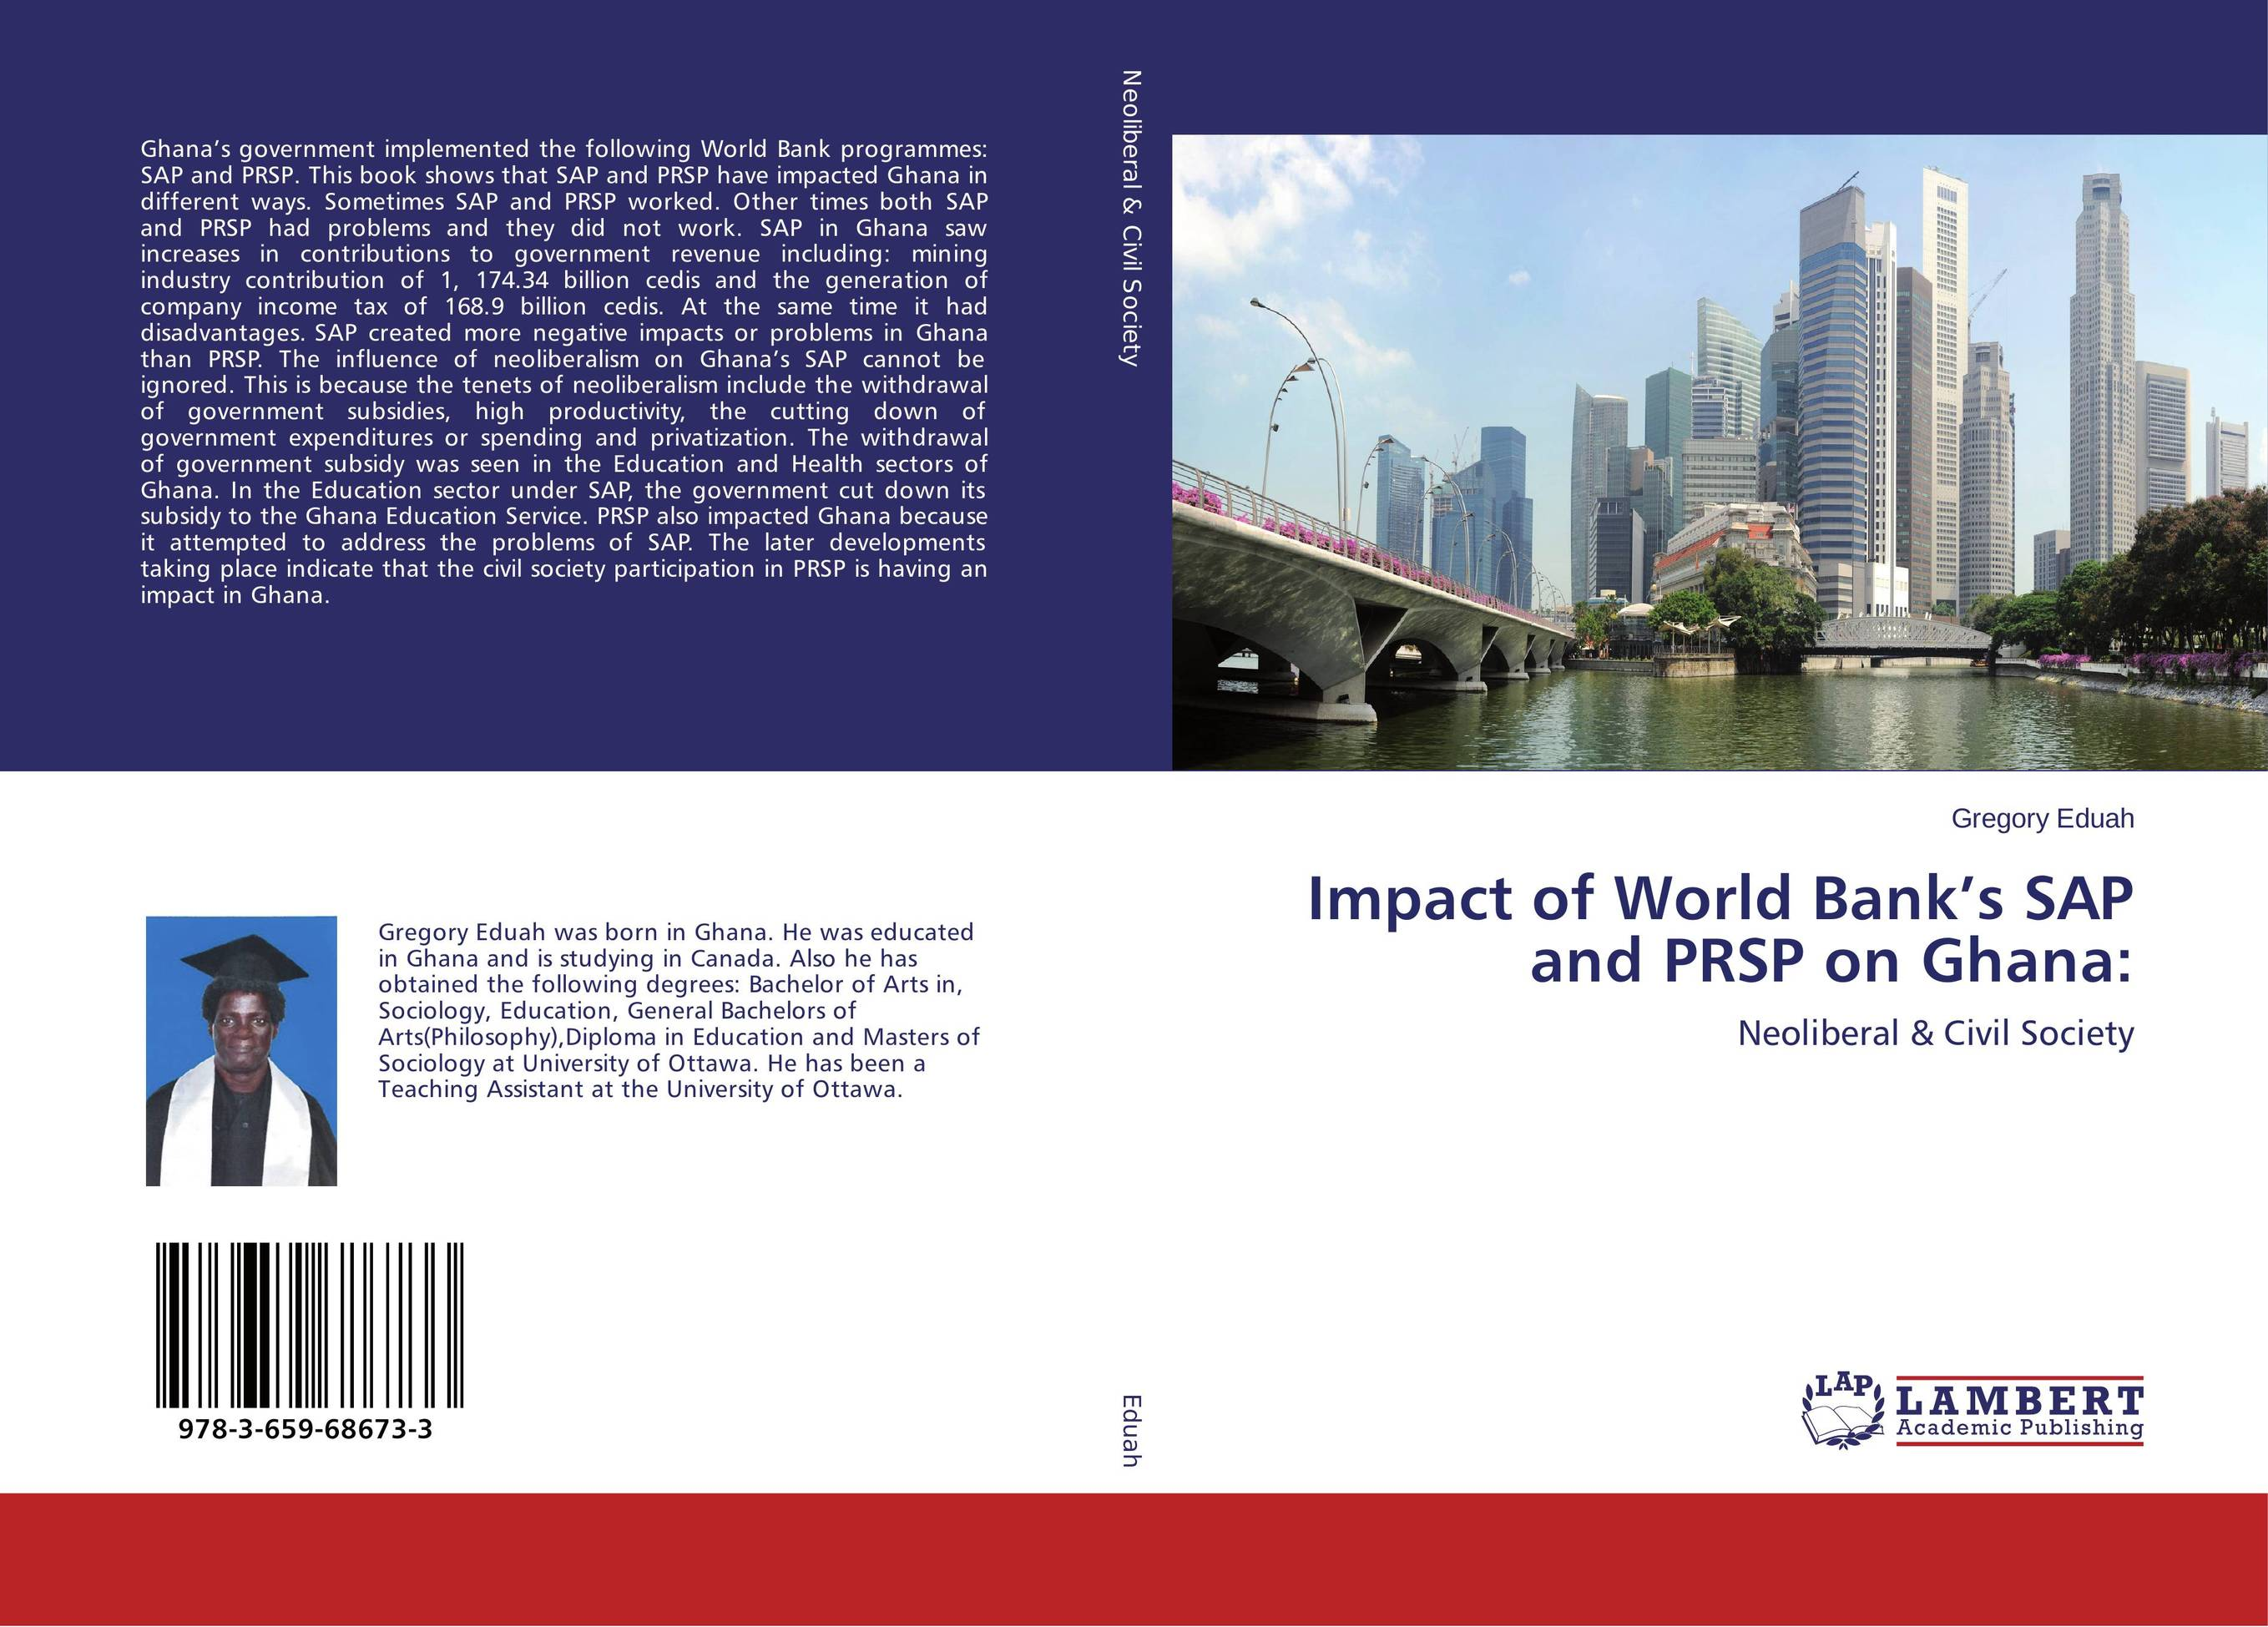 Impact of World Bank's SAP and PRSP on Ghana: